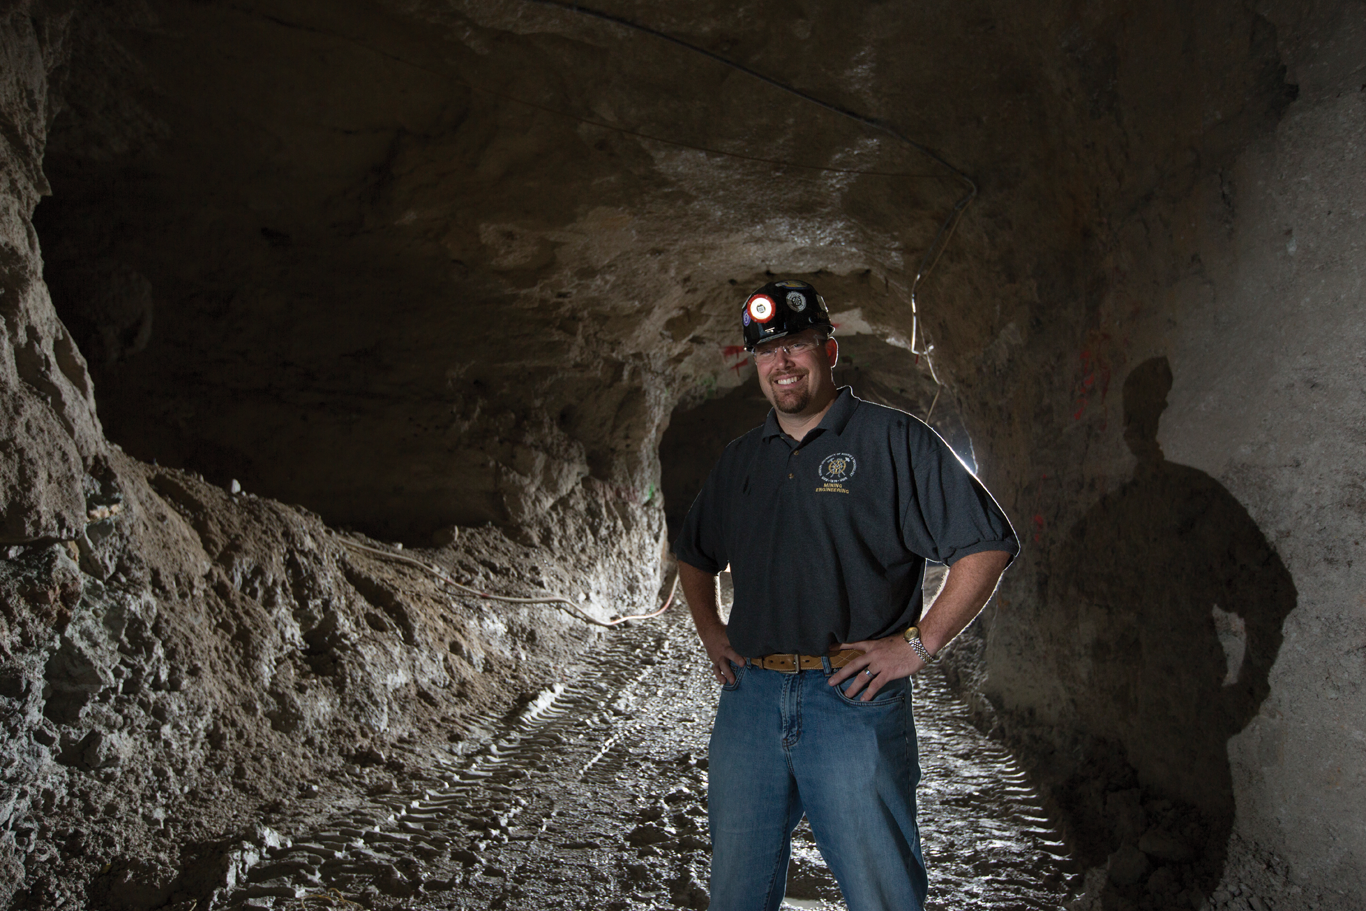 Rolla Miner,Redux: Braden Lusk returns to S&T to lead his home department